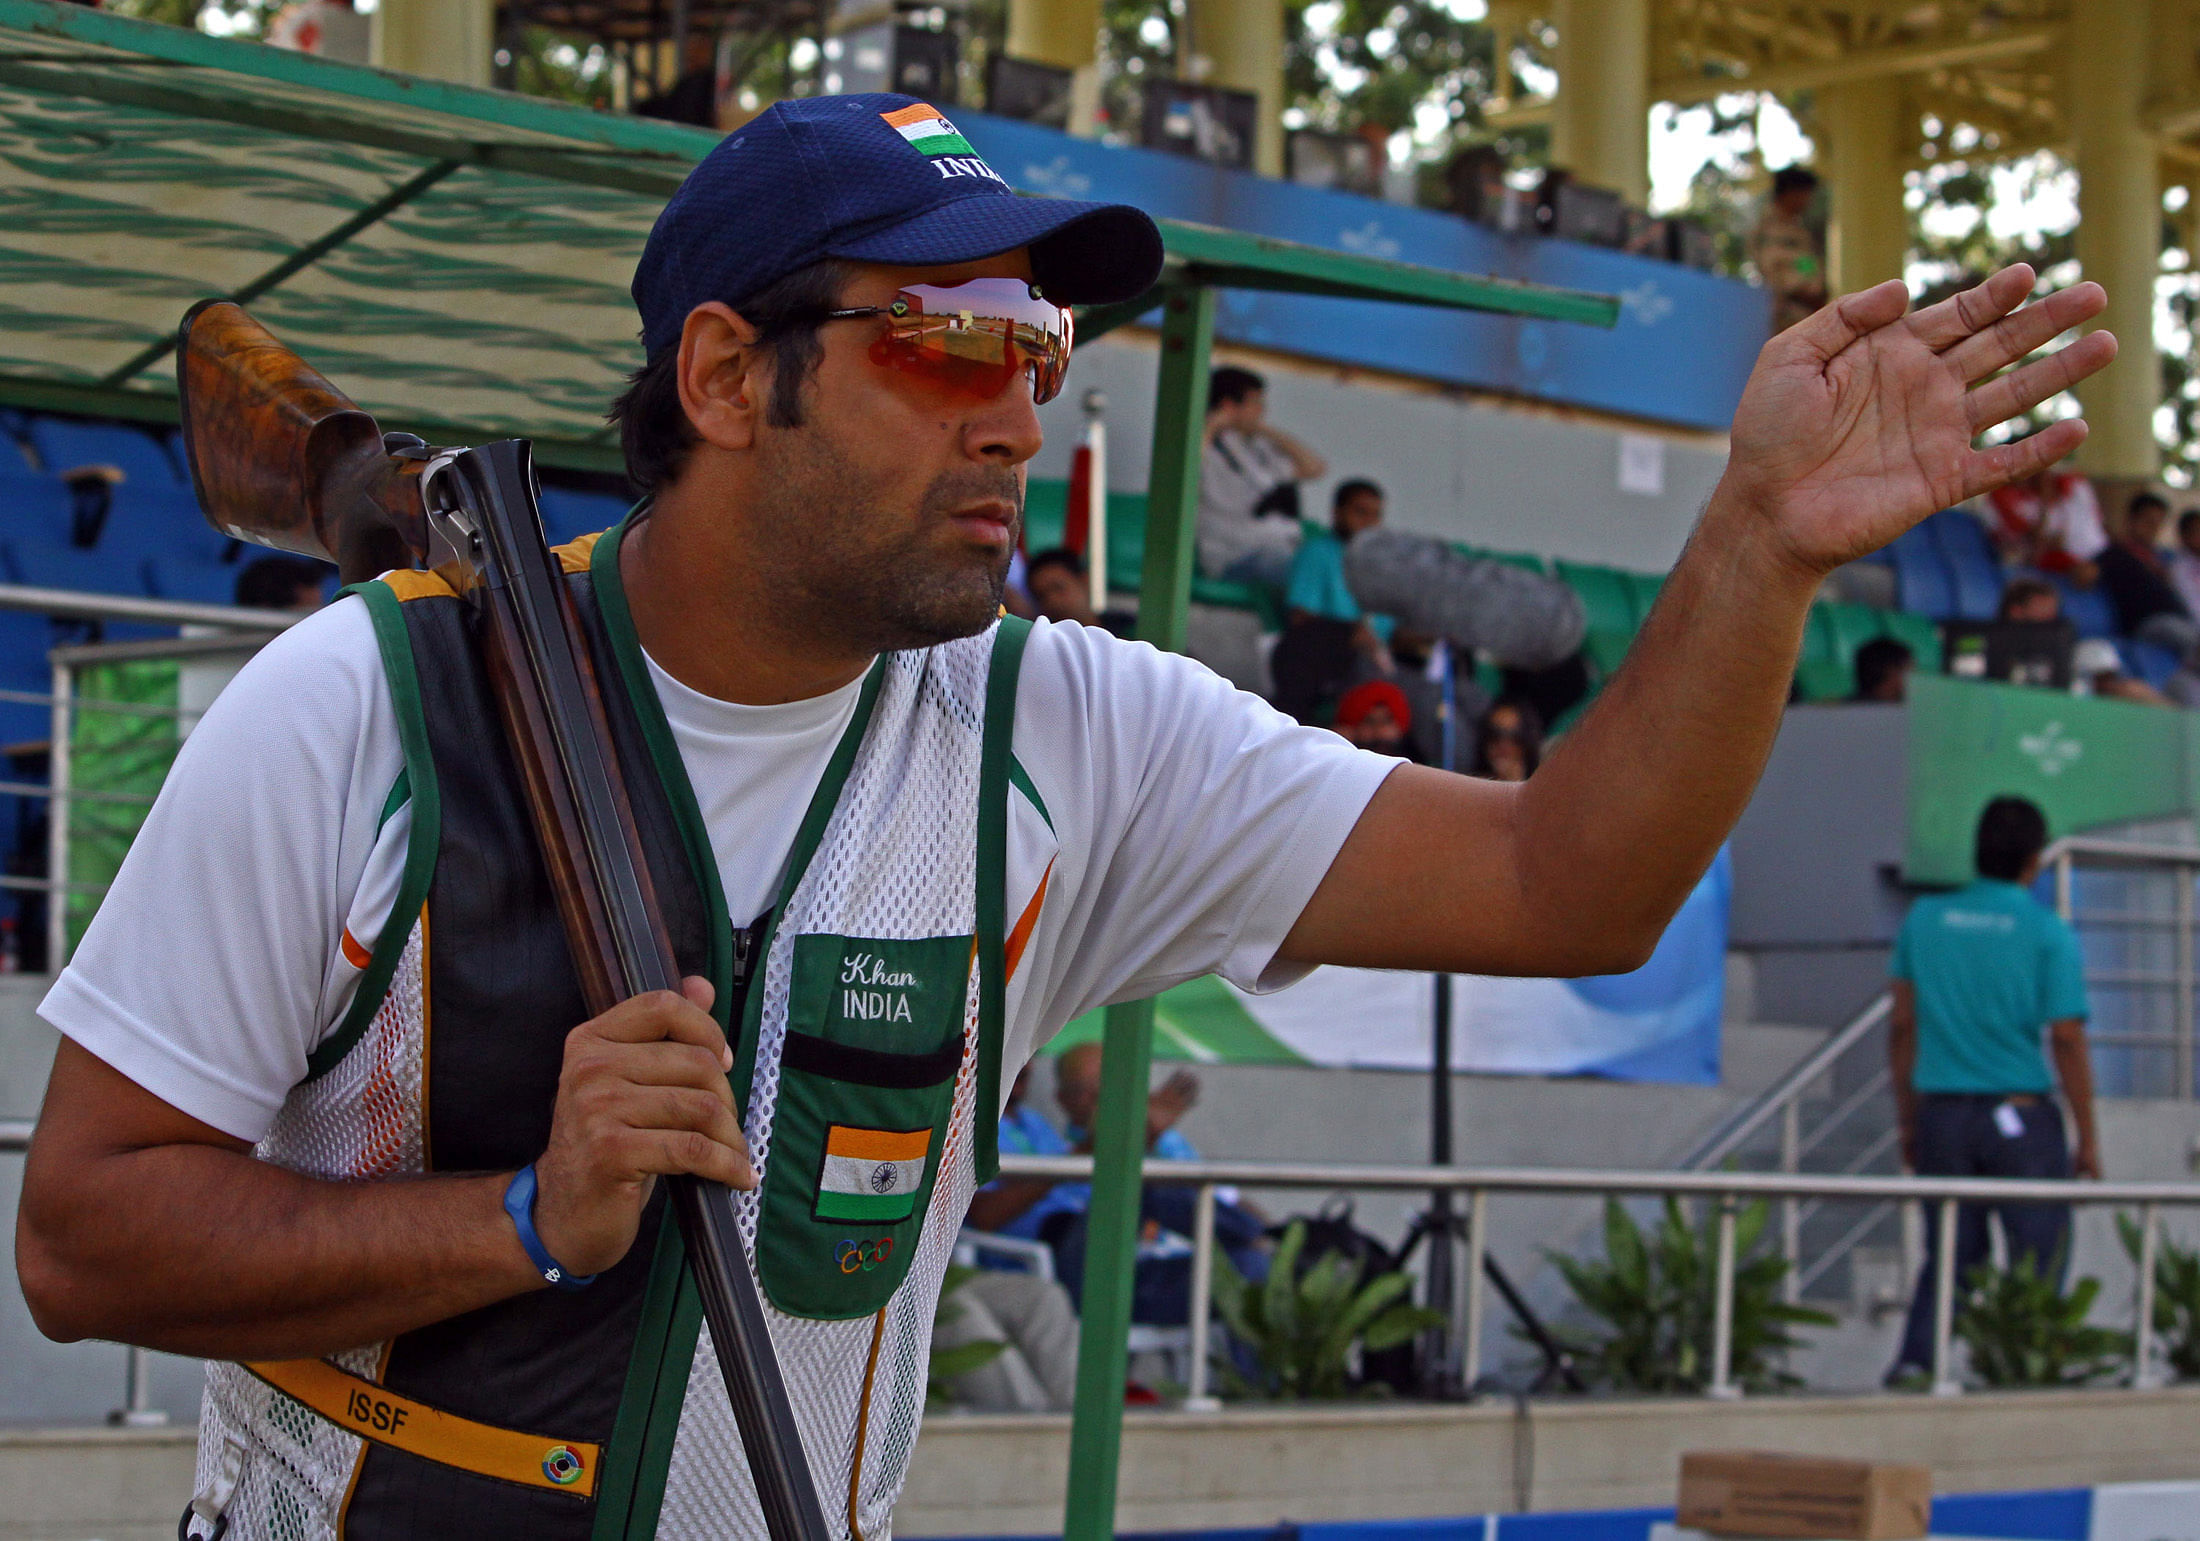 Asian Games 2014: Ahmad Mairaj Khan finished 5th in skeet qualification 1